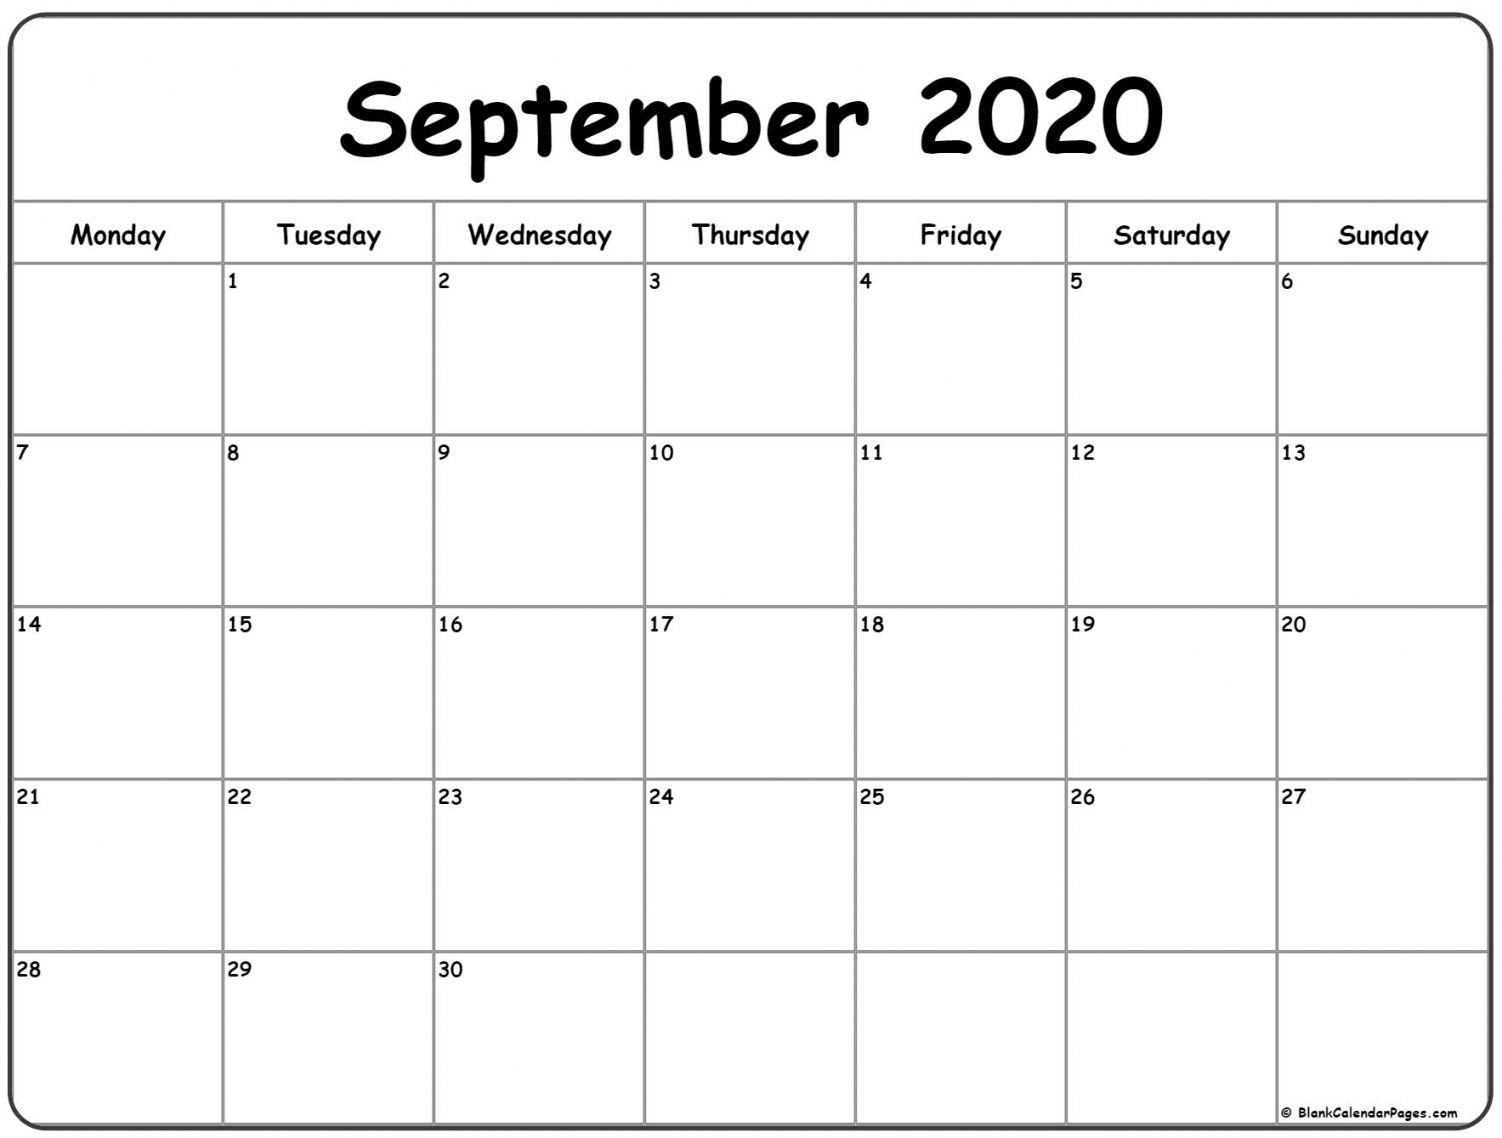 September 2020 Calendar | October Calendar, Calendar Blank Sunday Through Saturday Calendar